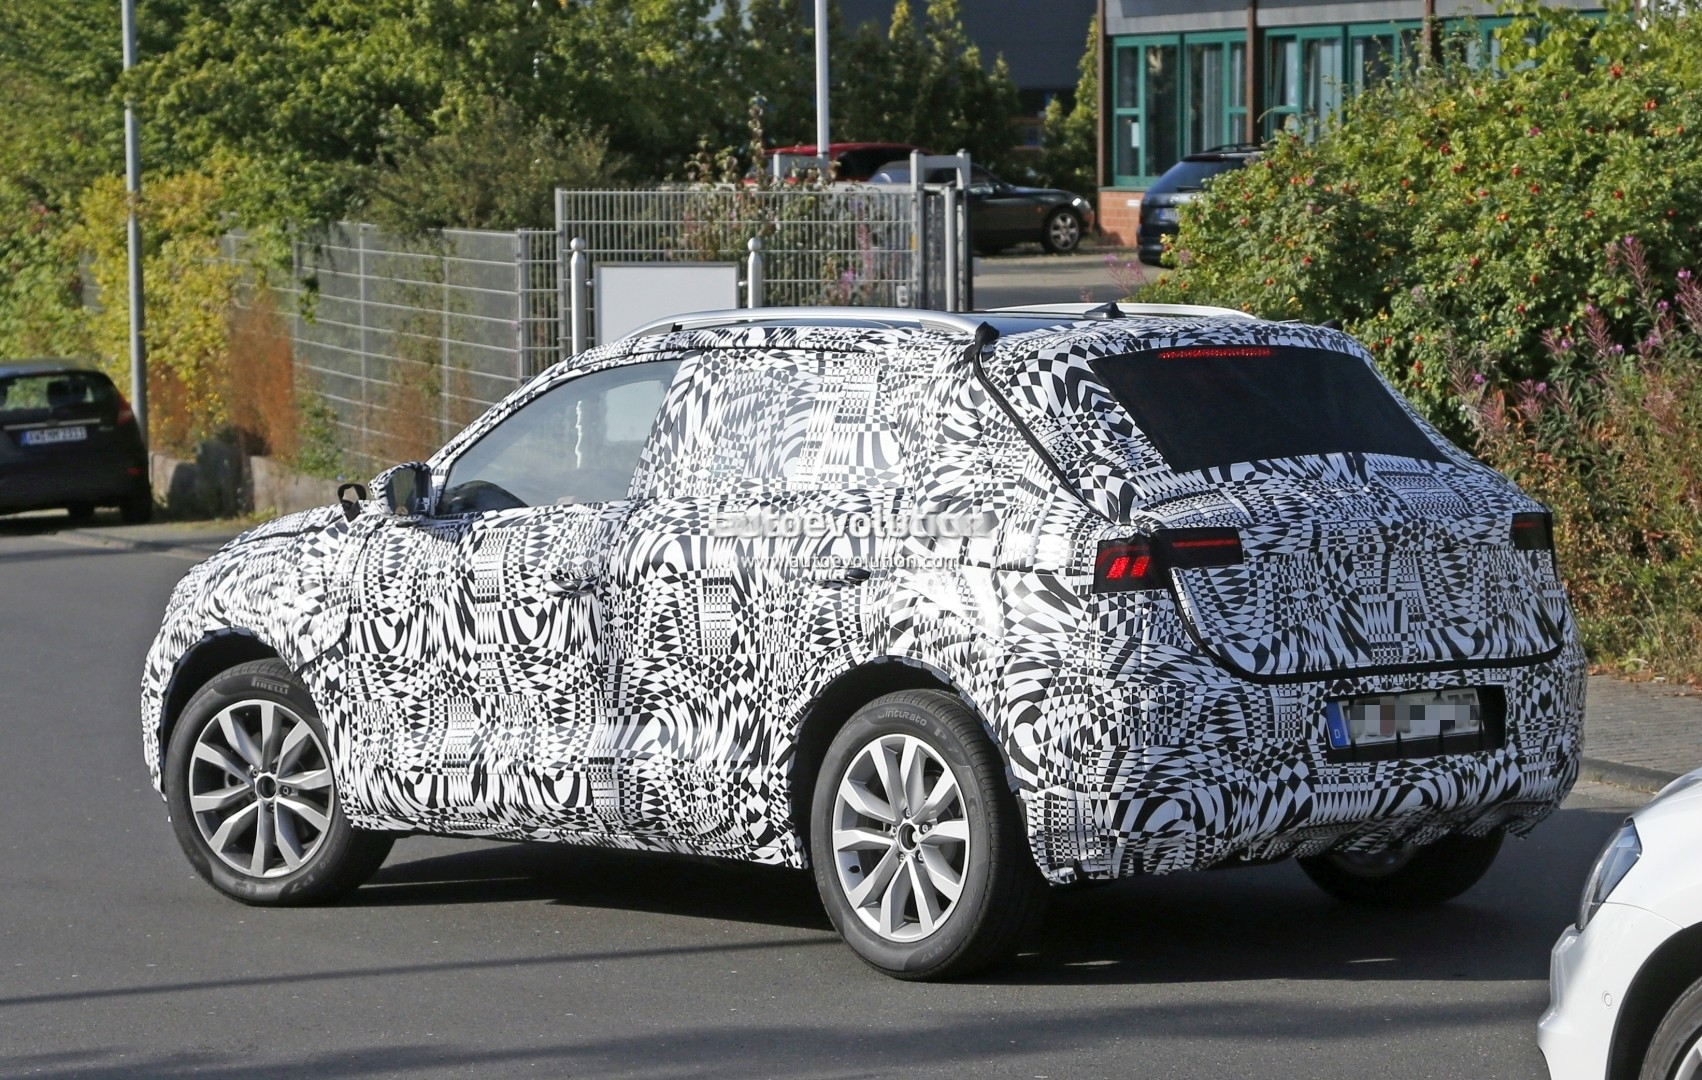 2018 Volkswagen Polo-based Subcompact SUV Spied, US Market Entry ...